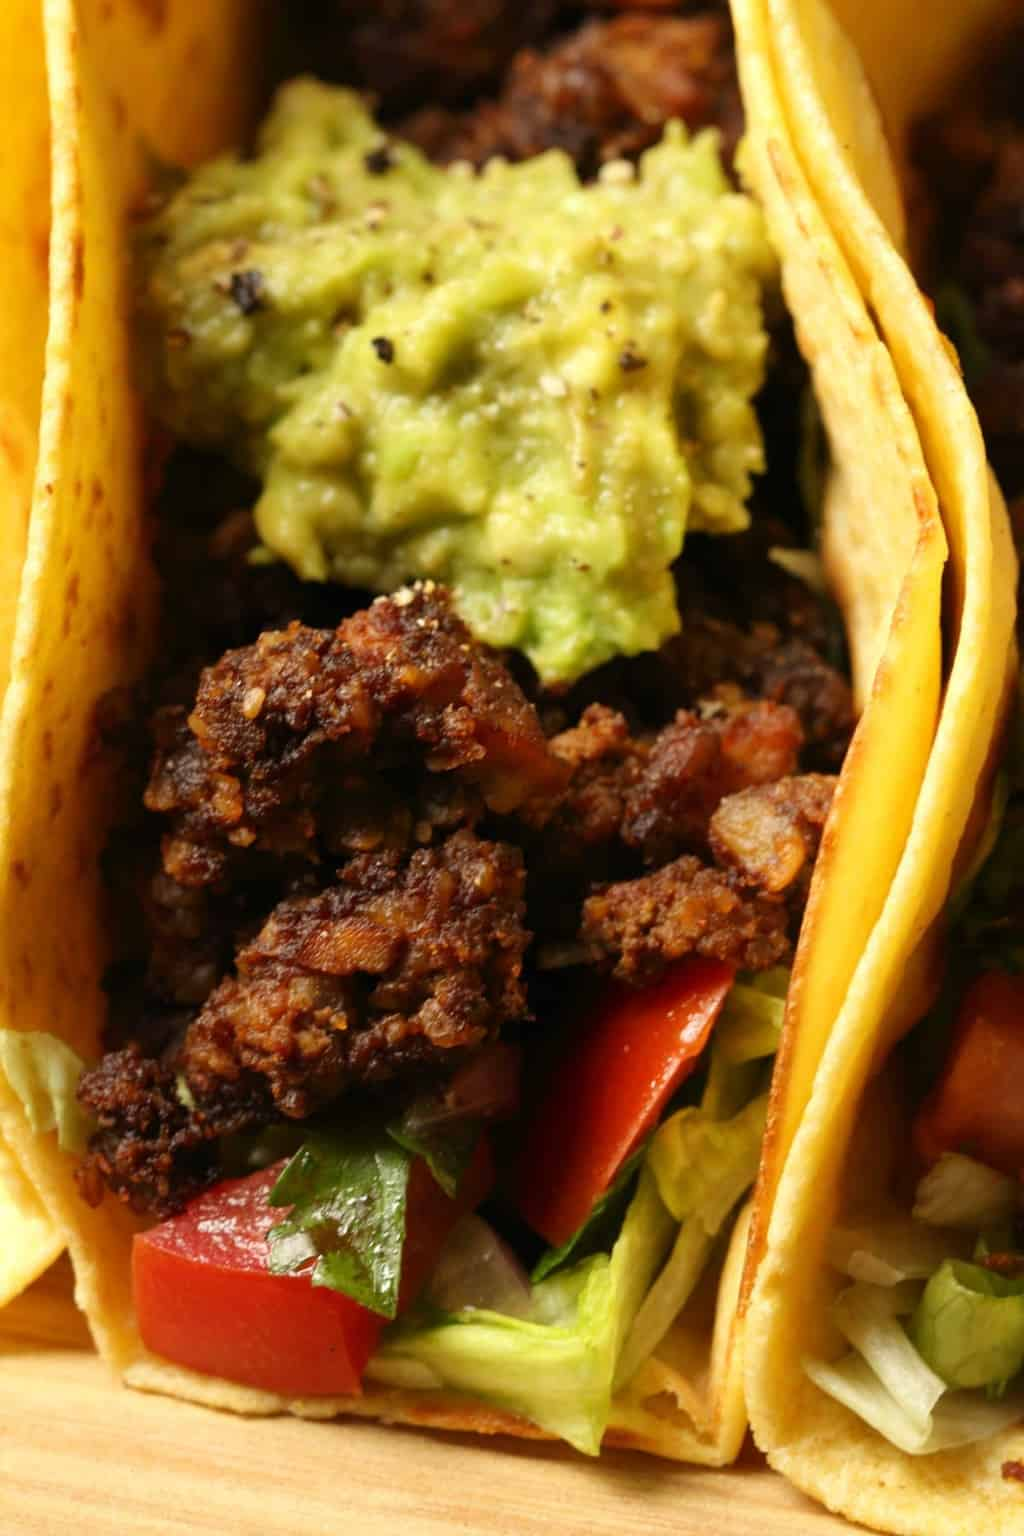 Vegan taco meat in a taco with lettuce, salsa and guacamole.